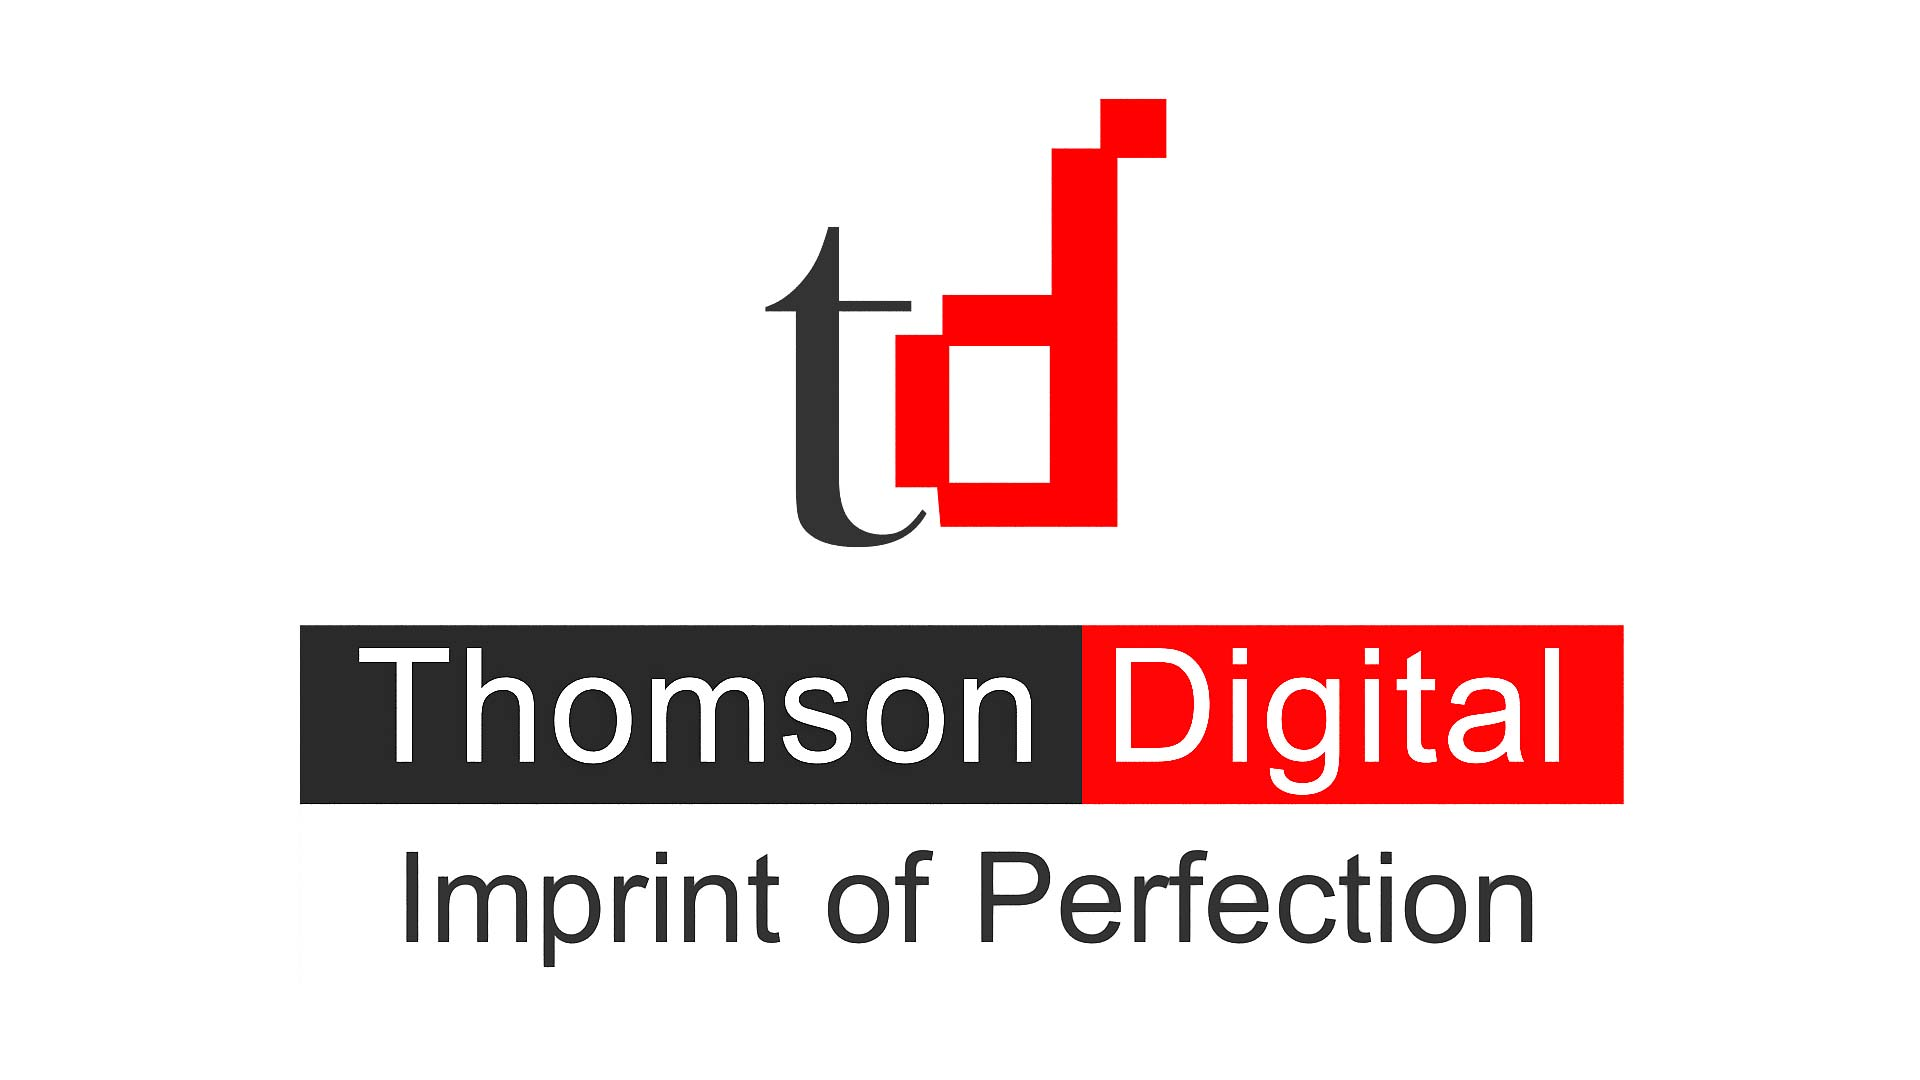 Thomson Digital, Book Fair 2017, Frankfurt